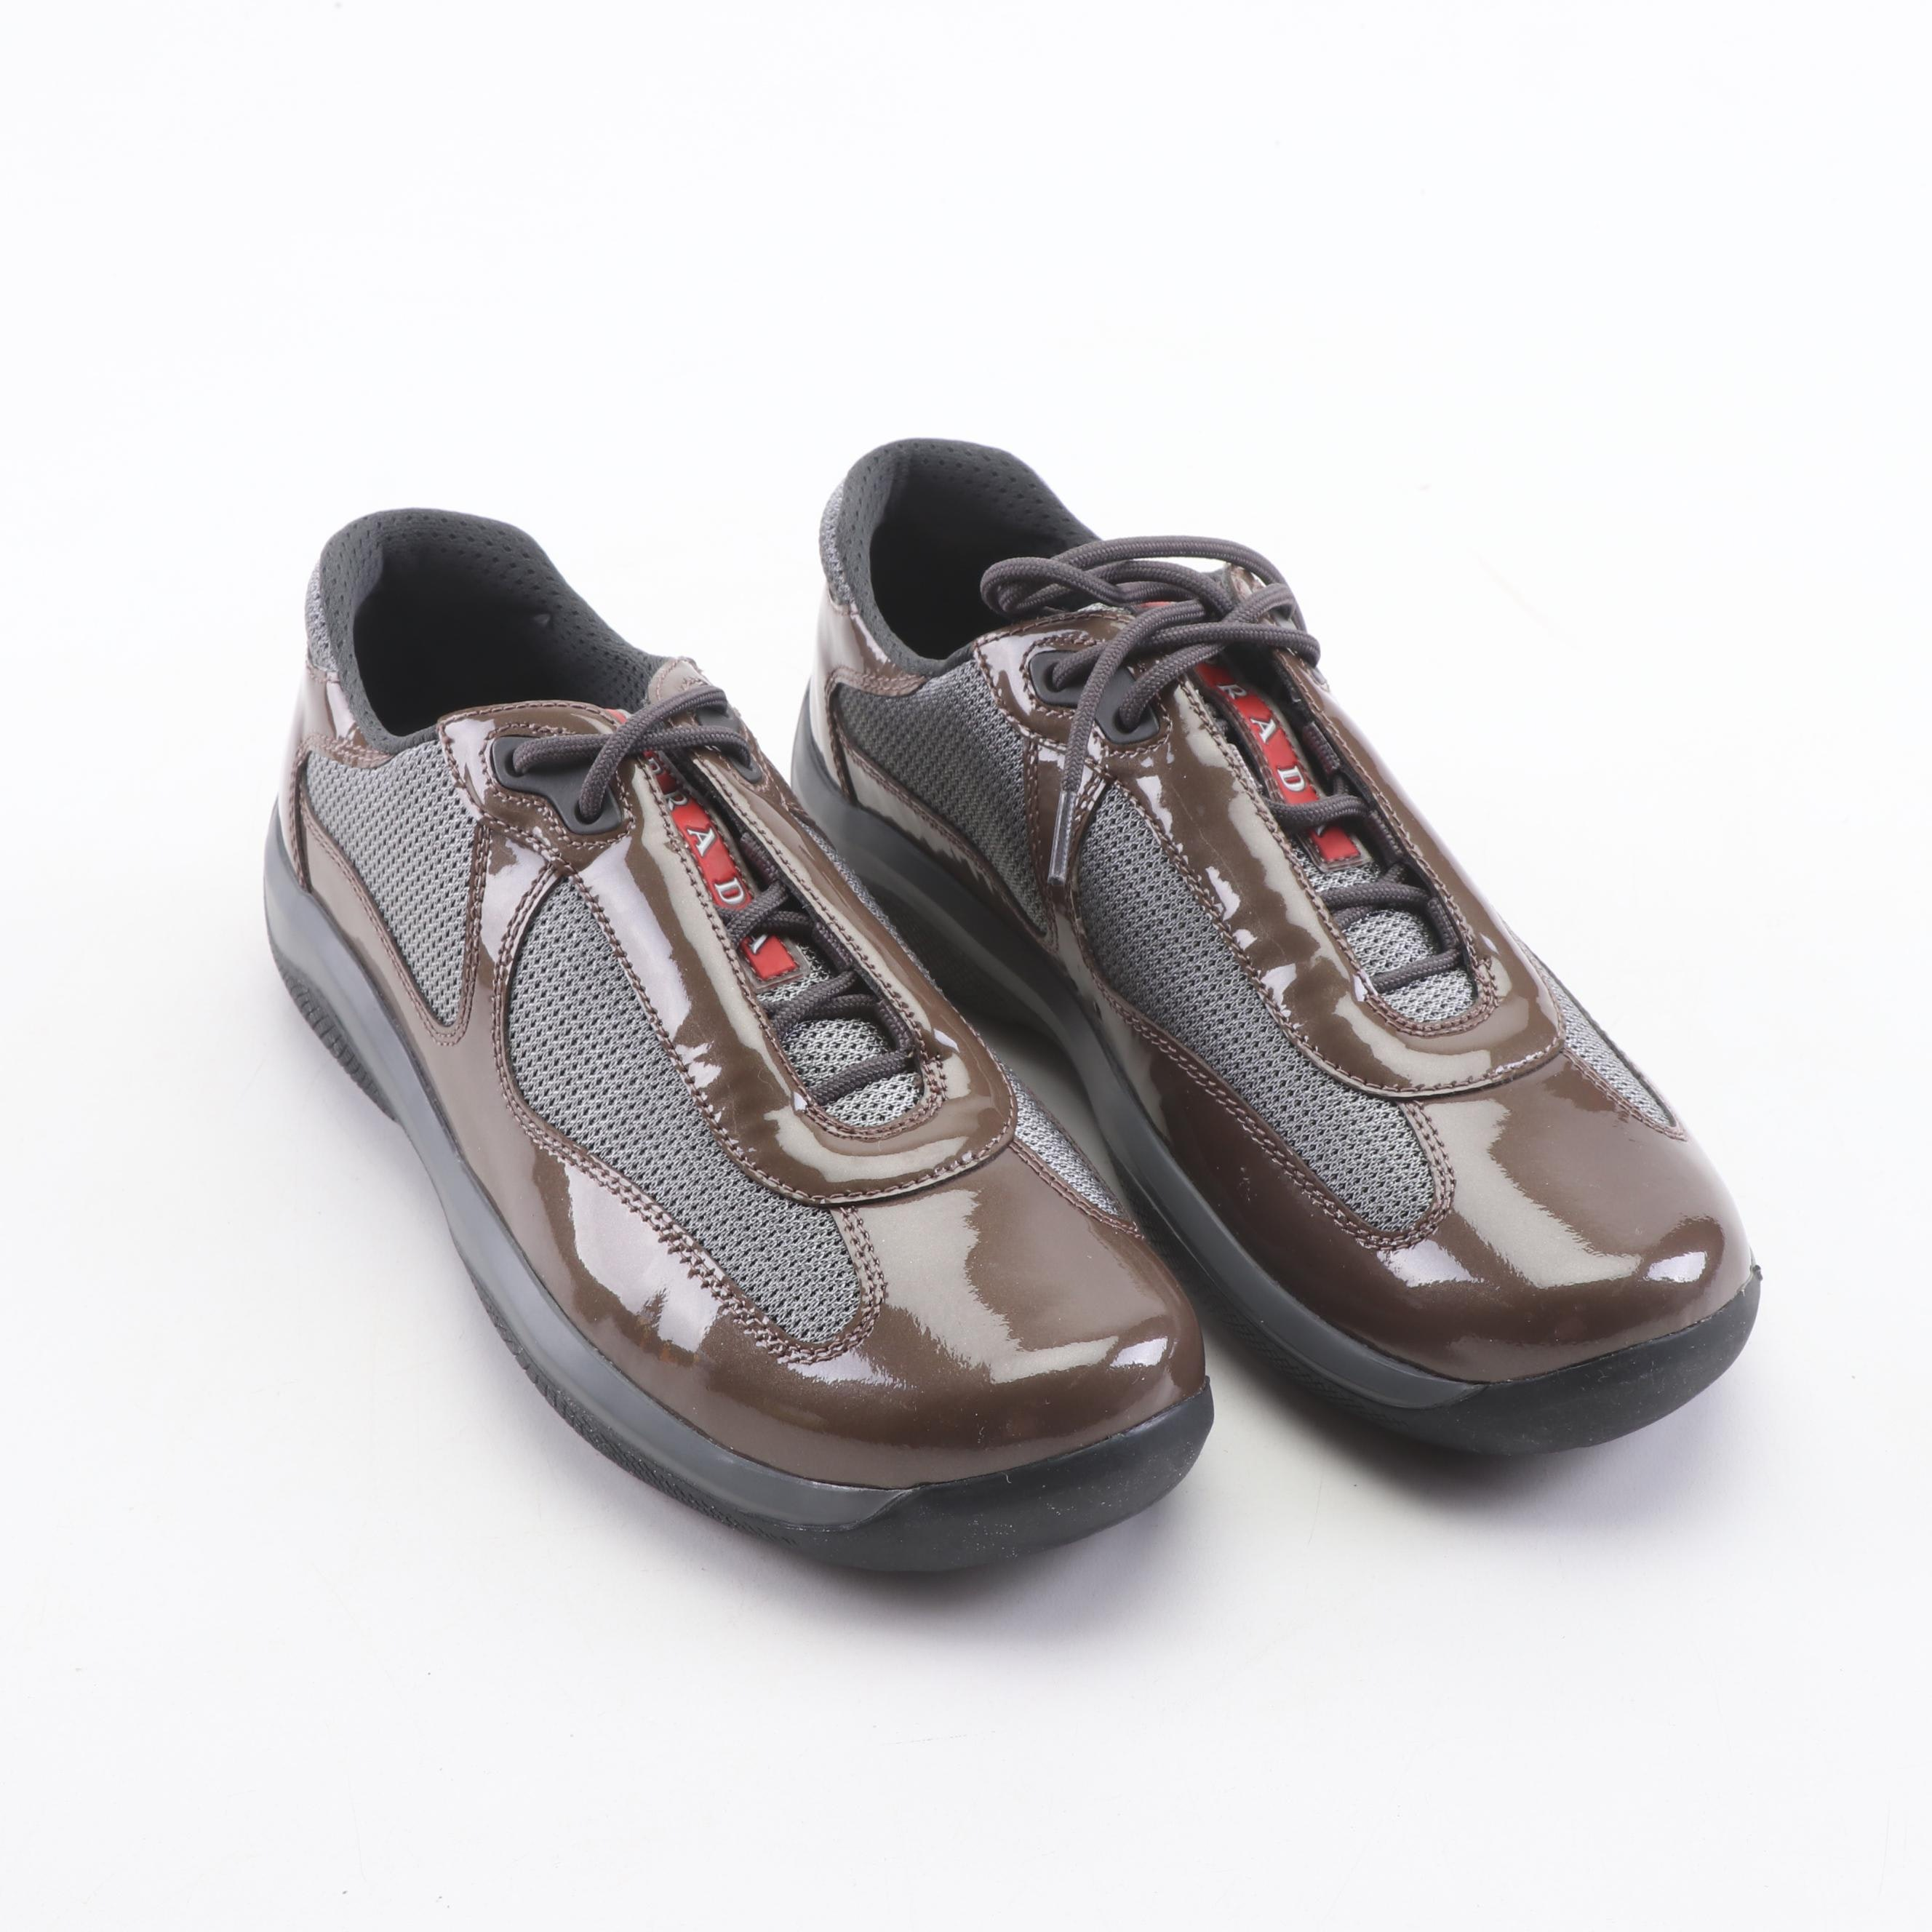 Women's Prada Calzature Donna Mesh and Patent Leather Fashion Sneakers